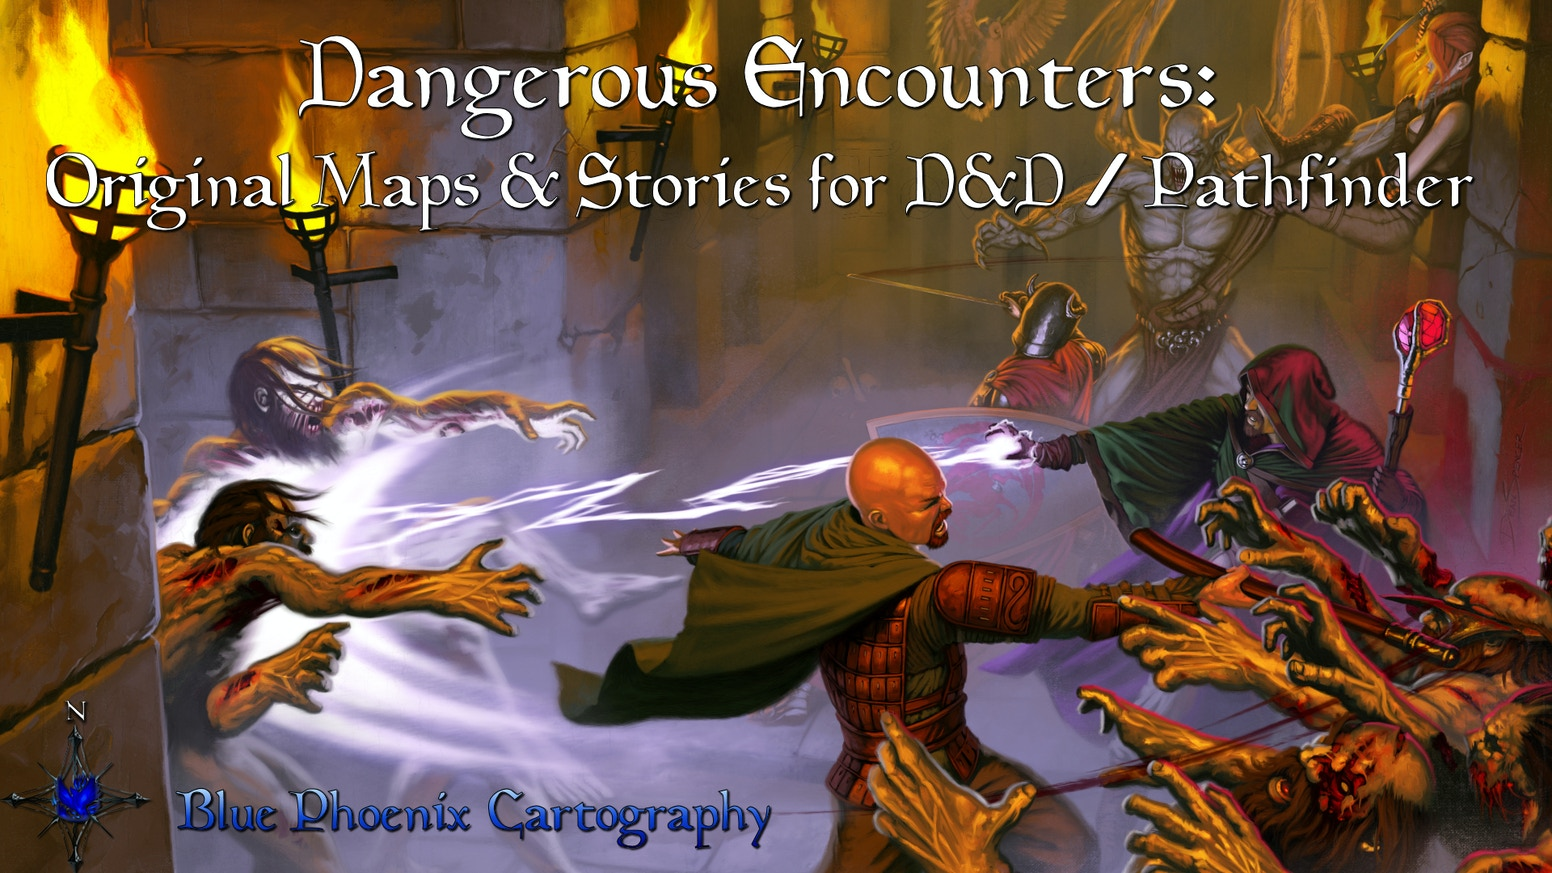 A collection of original Fantasy RPG encounters with maps for use with Dungeons & Dragons (D&D), Pathfinder, etc.